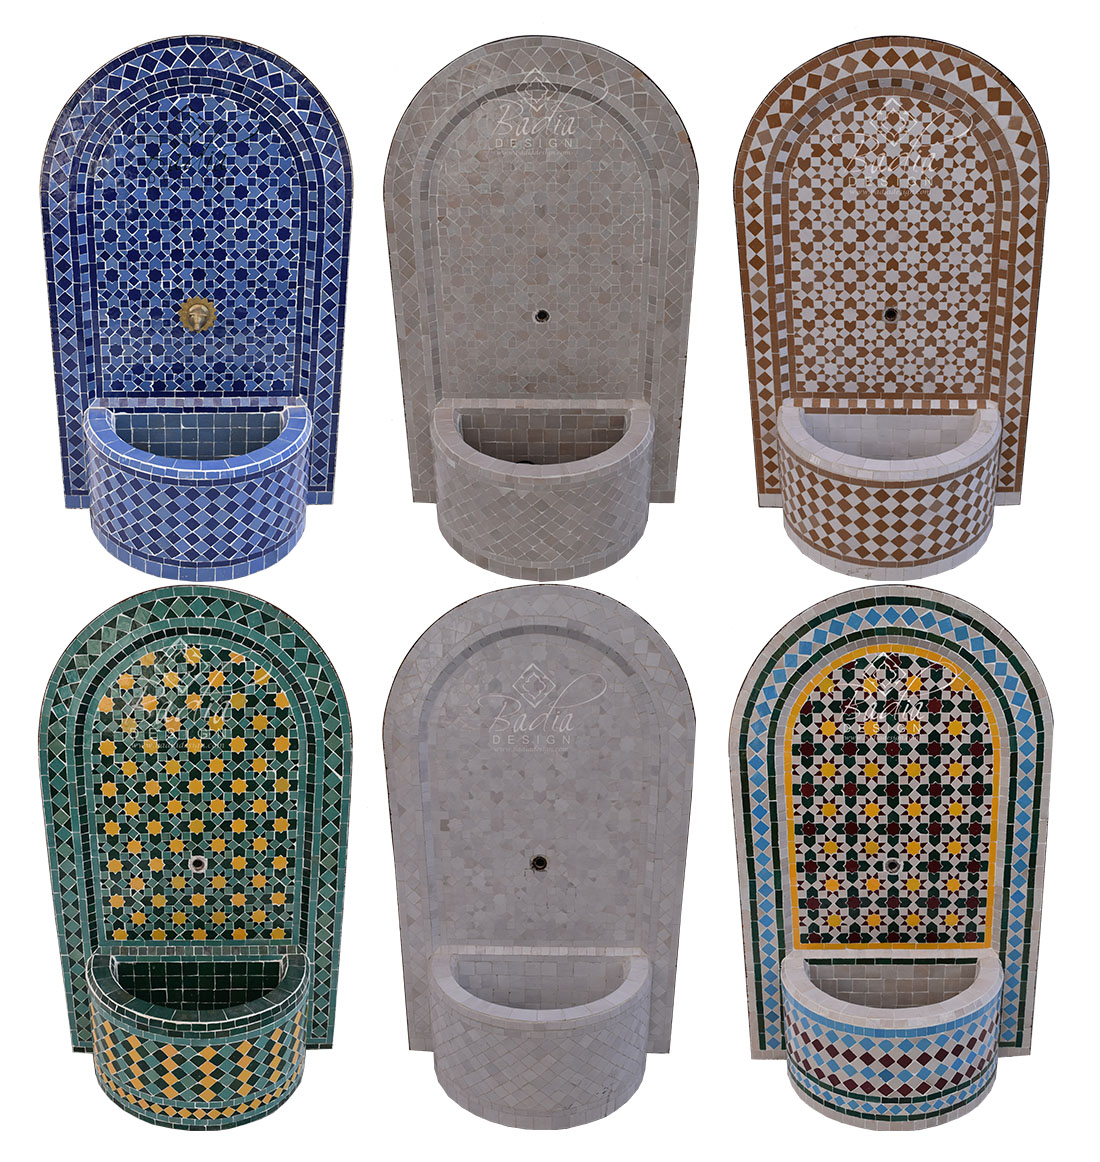 moroccan-mosaic-tile-water-fountains-mf687.jpg